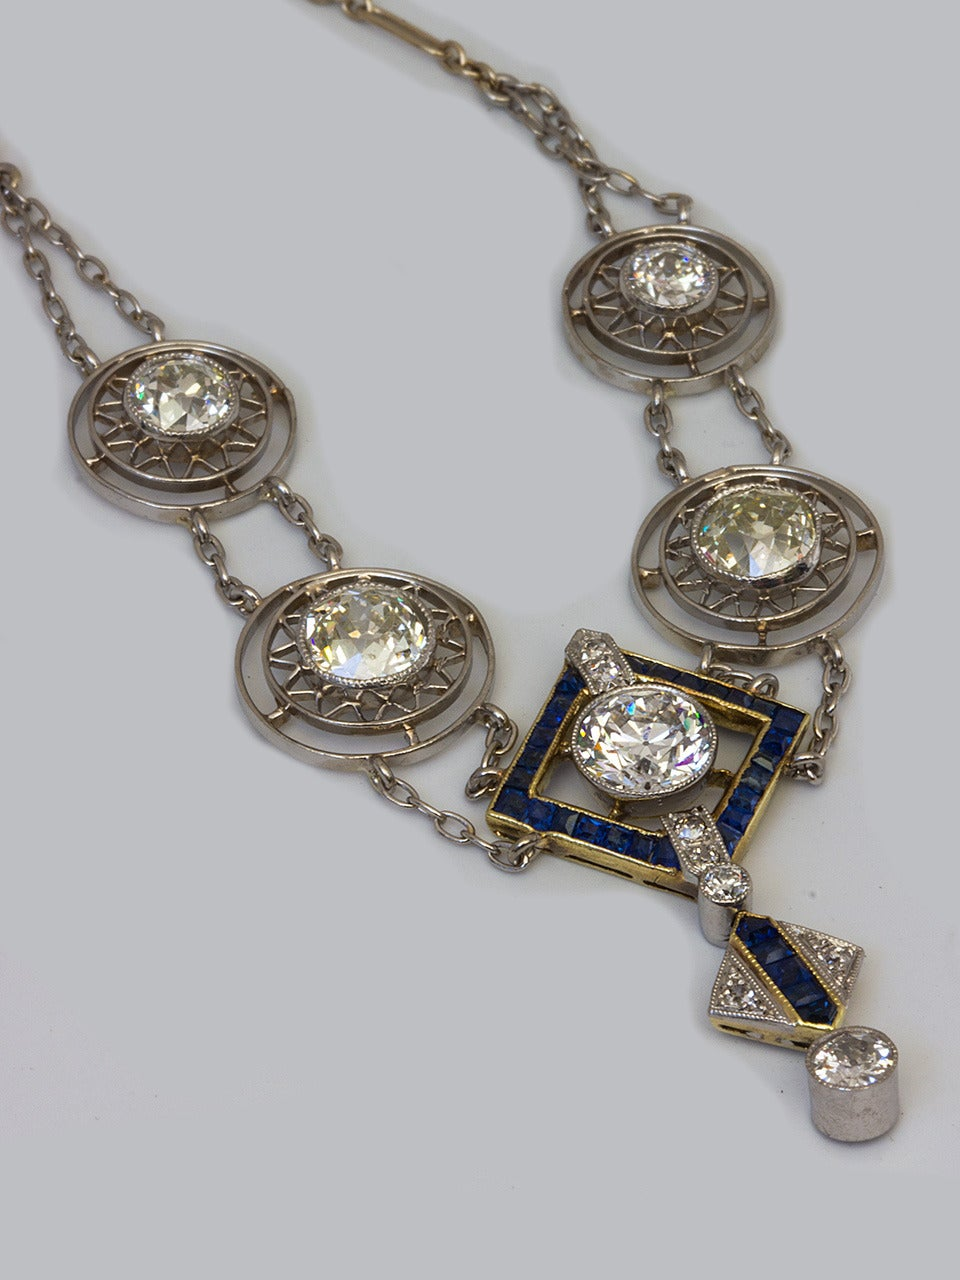 1920s Art Deco 3.50 Carat Platinum 18 Karat and Diamond Lavalier Necklace For Sale 3